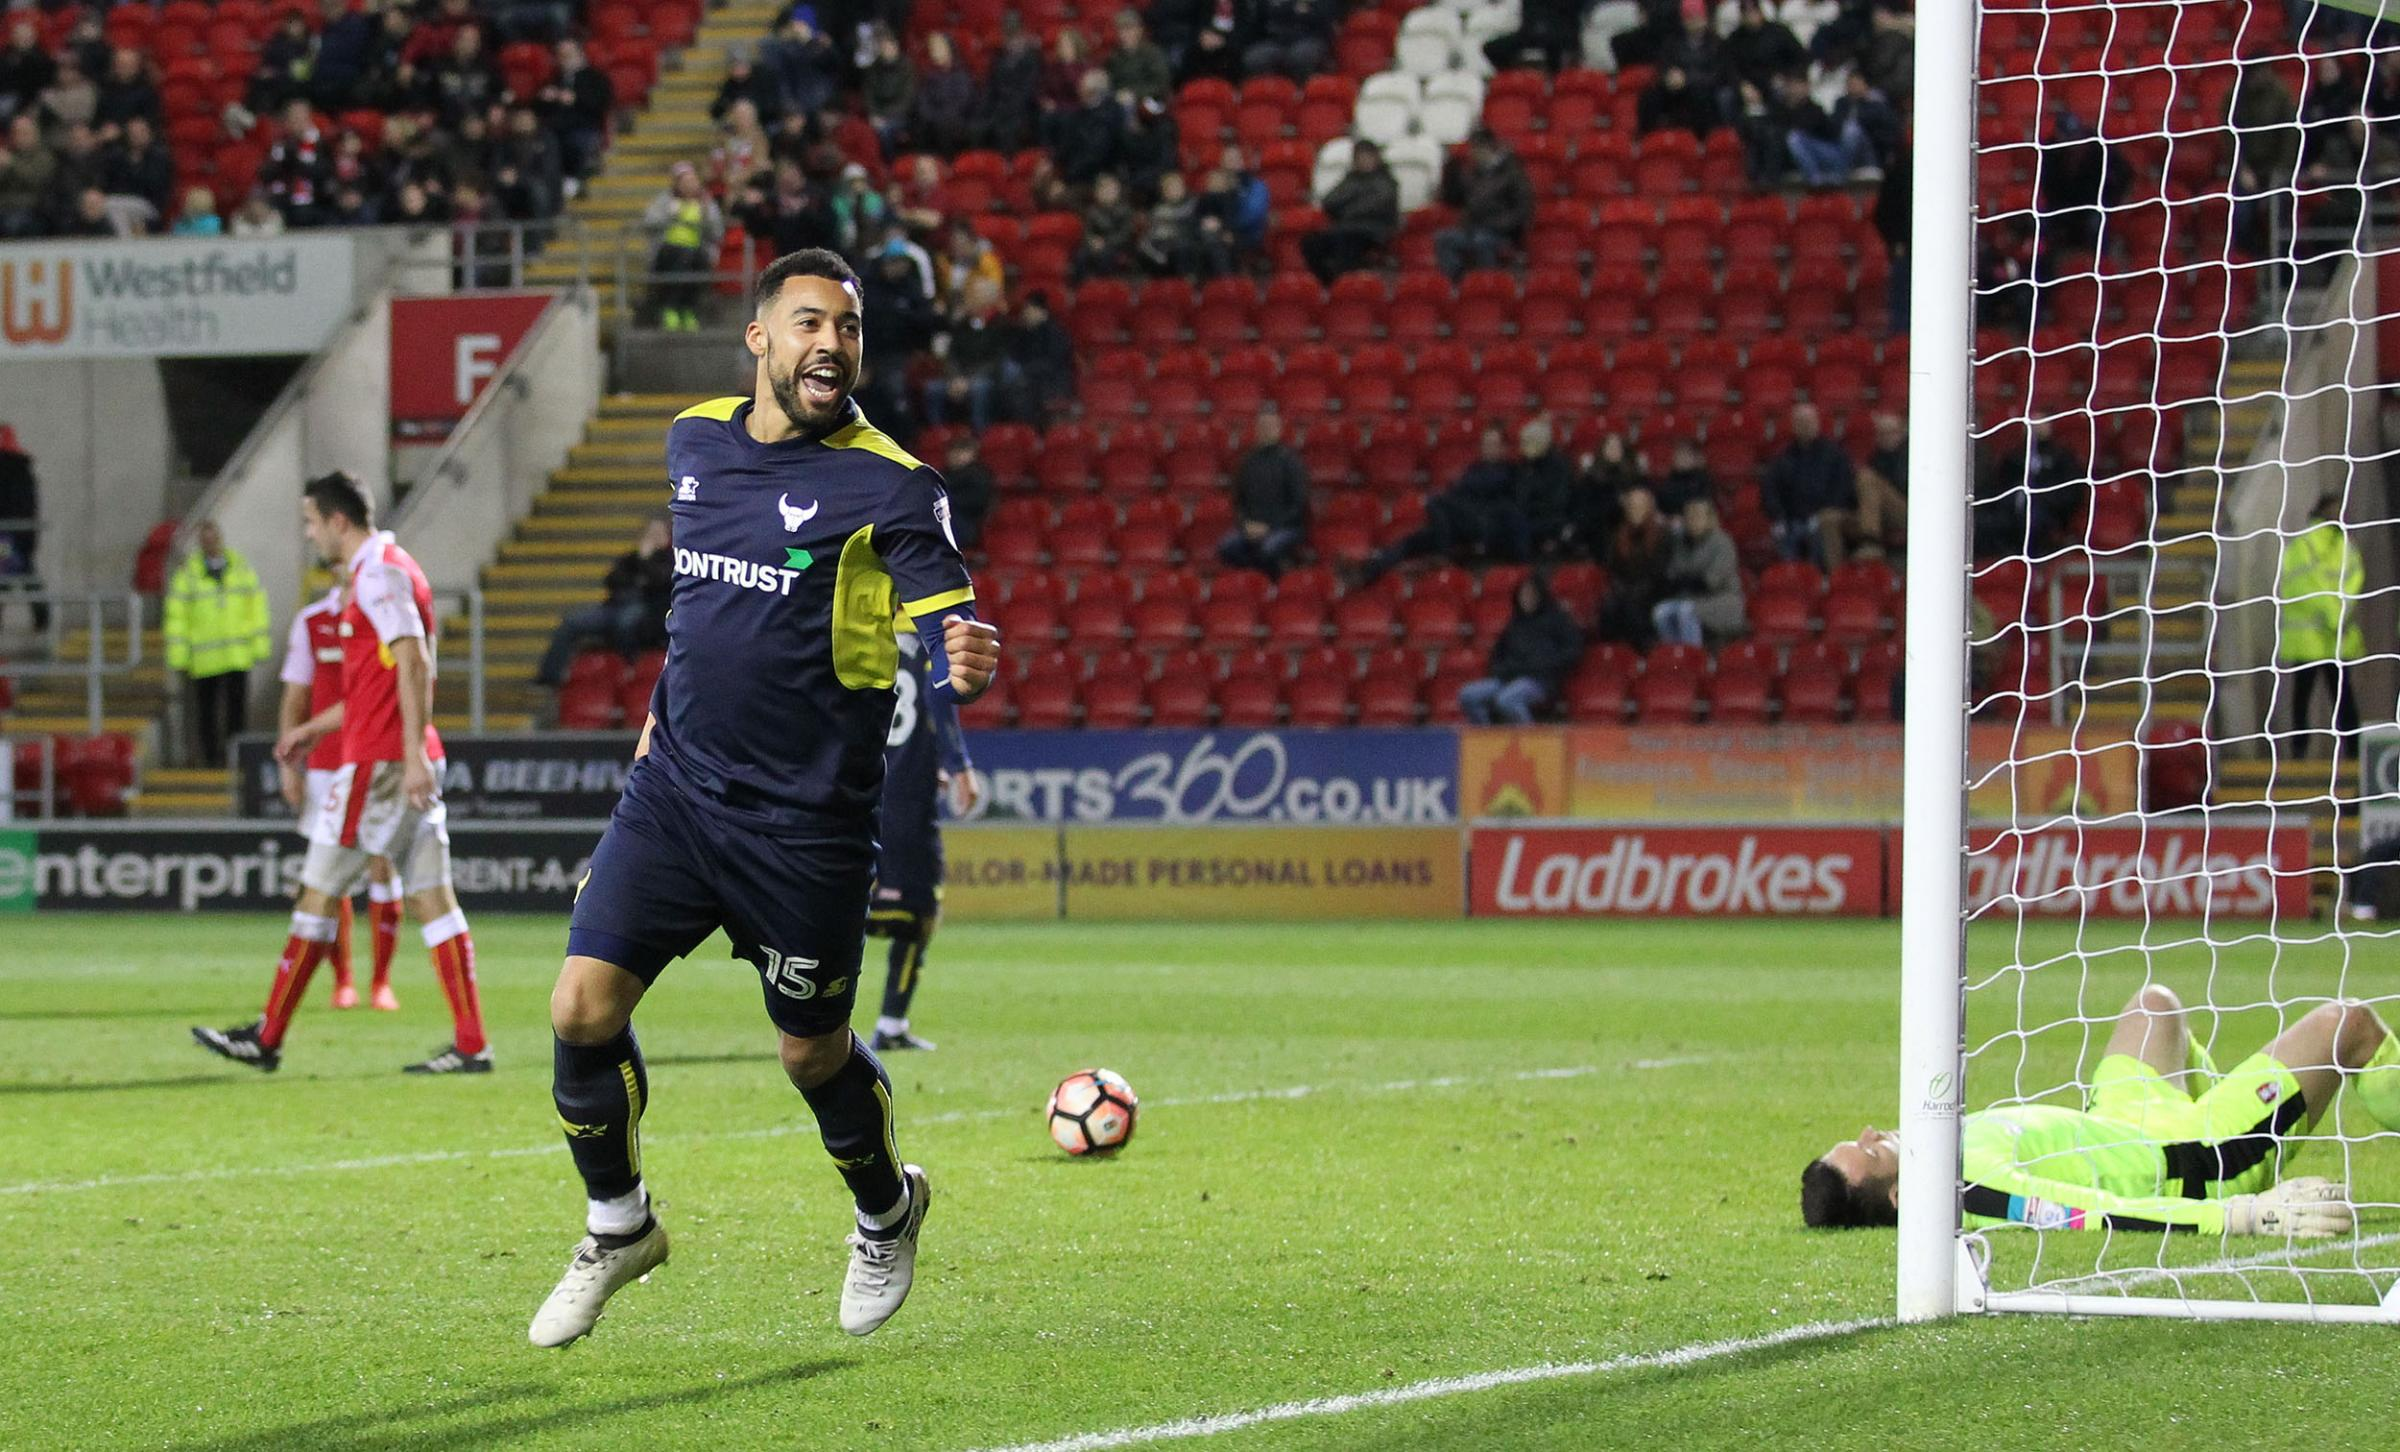 ON TARGET: Kane Hemmings wheels away after scoring for Oxford United in an FA Cup tie at Rotherham in 2017Picture: Richard Parkes